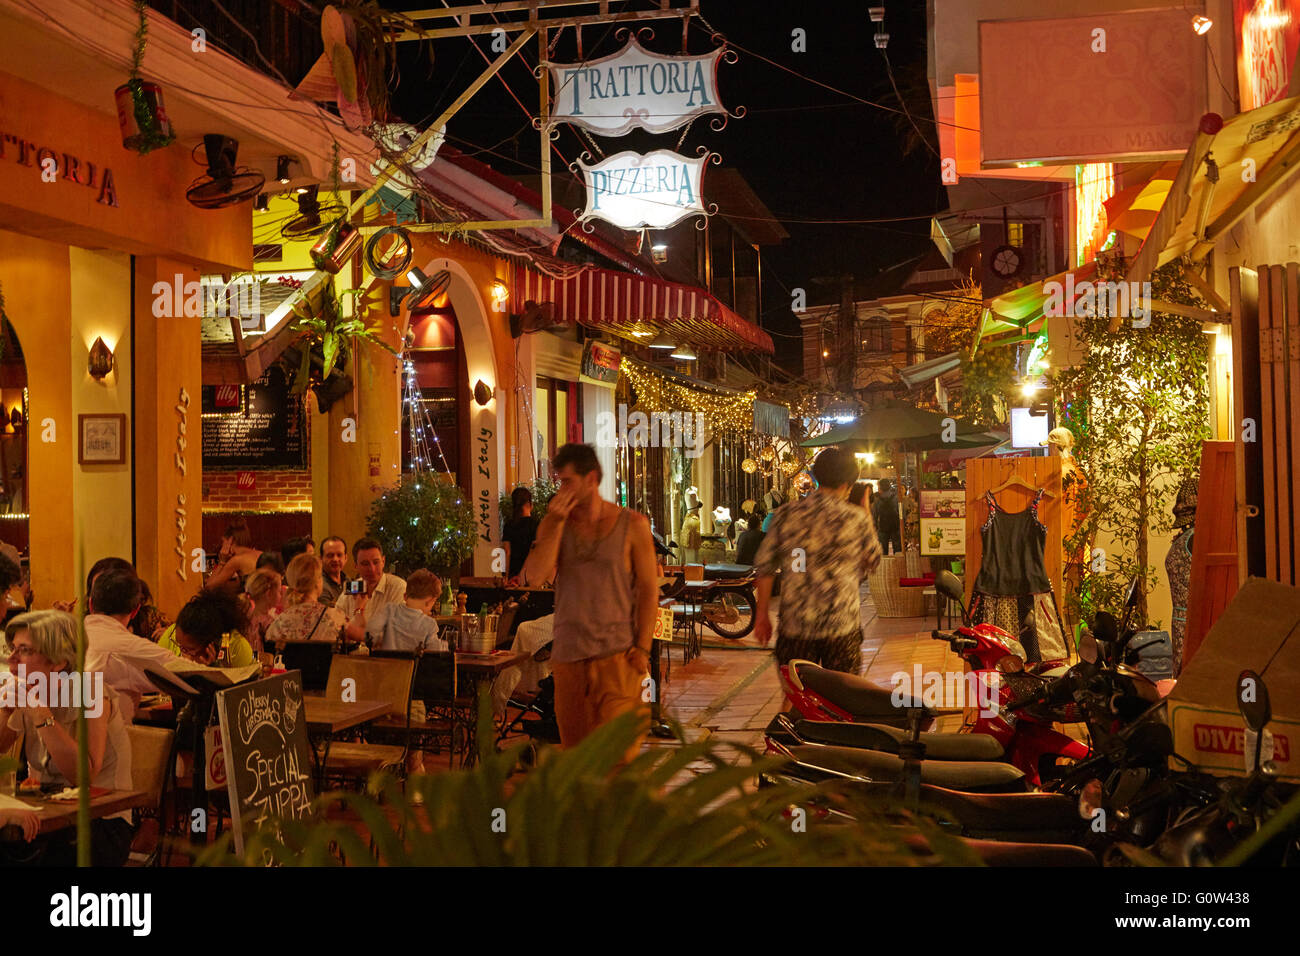 Pubs and restaurants on Alley West, Siem Reap, Cambodia - Stock Image